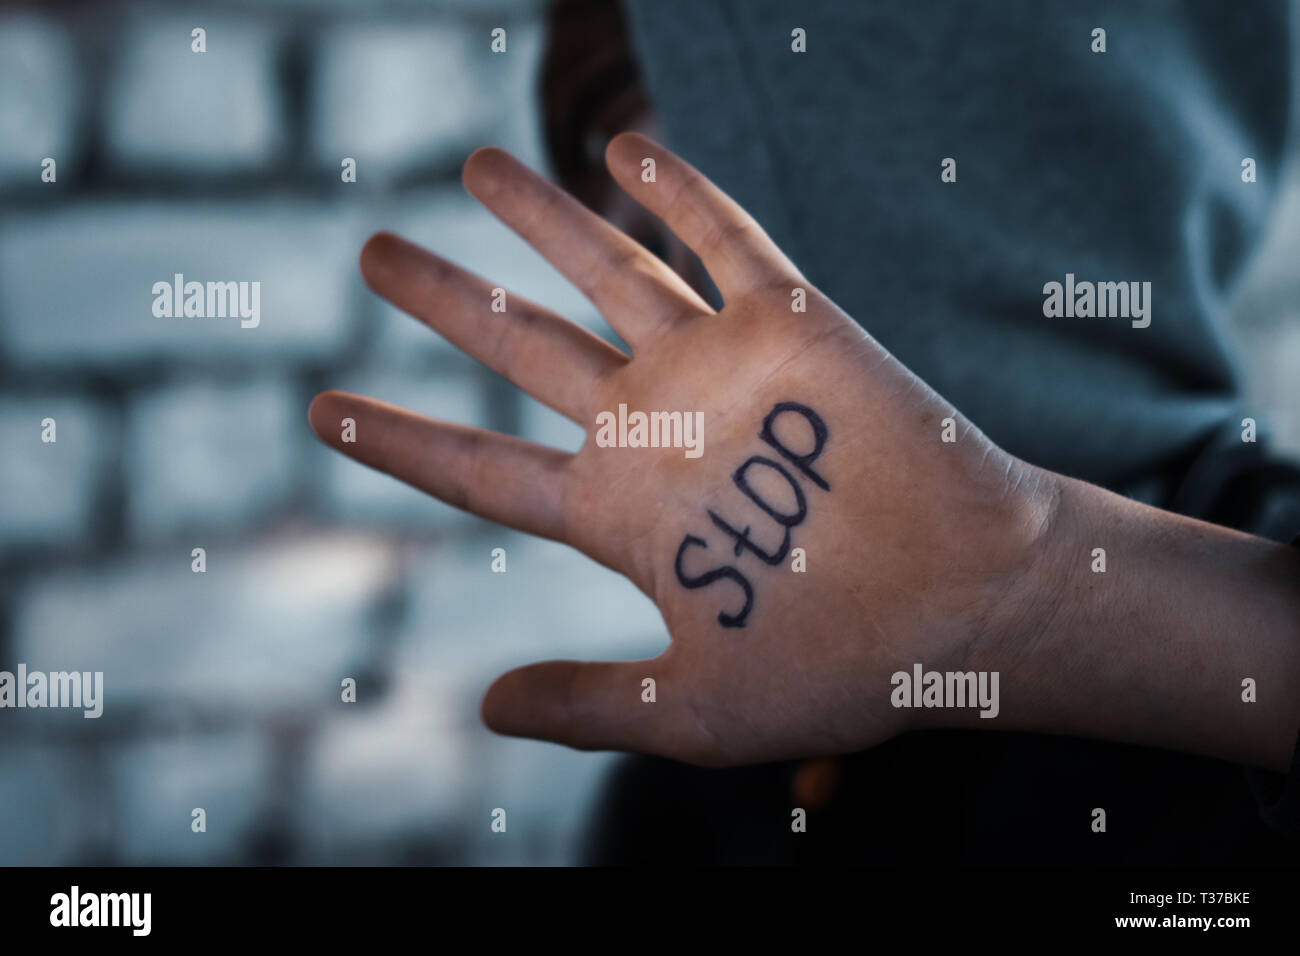 the boy closes his hand, written on his hand stop, cruelty to children Stock Photo